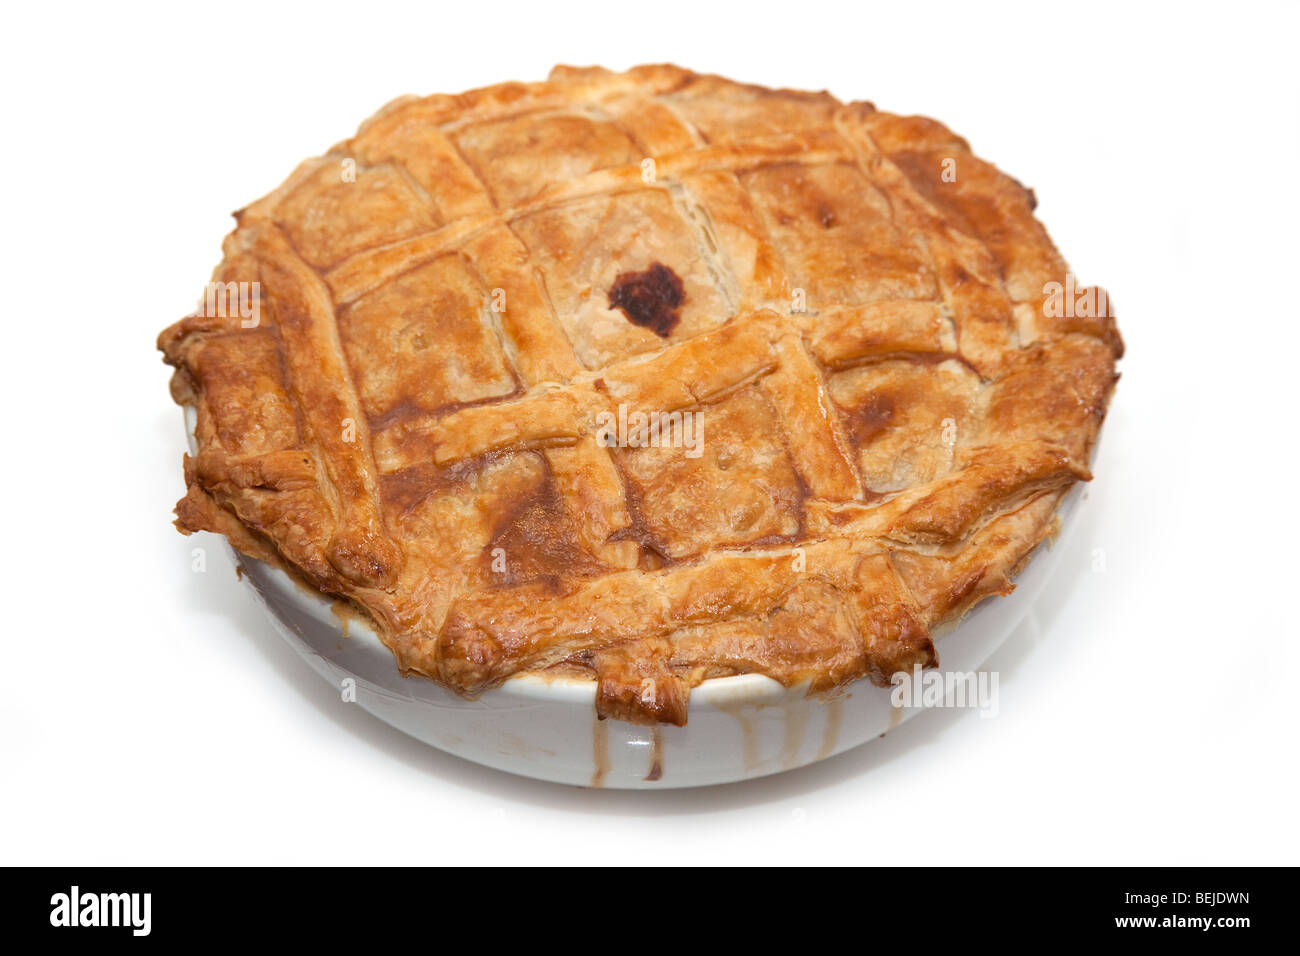 Steak and kidney pie isolated on a white studio background. - Stock Image